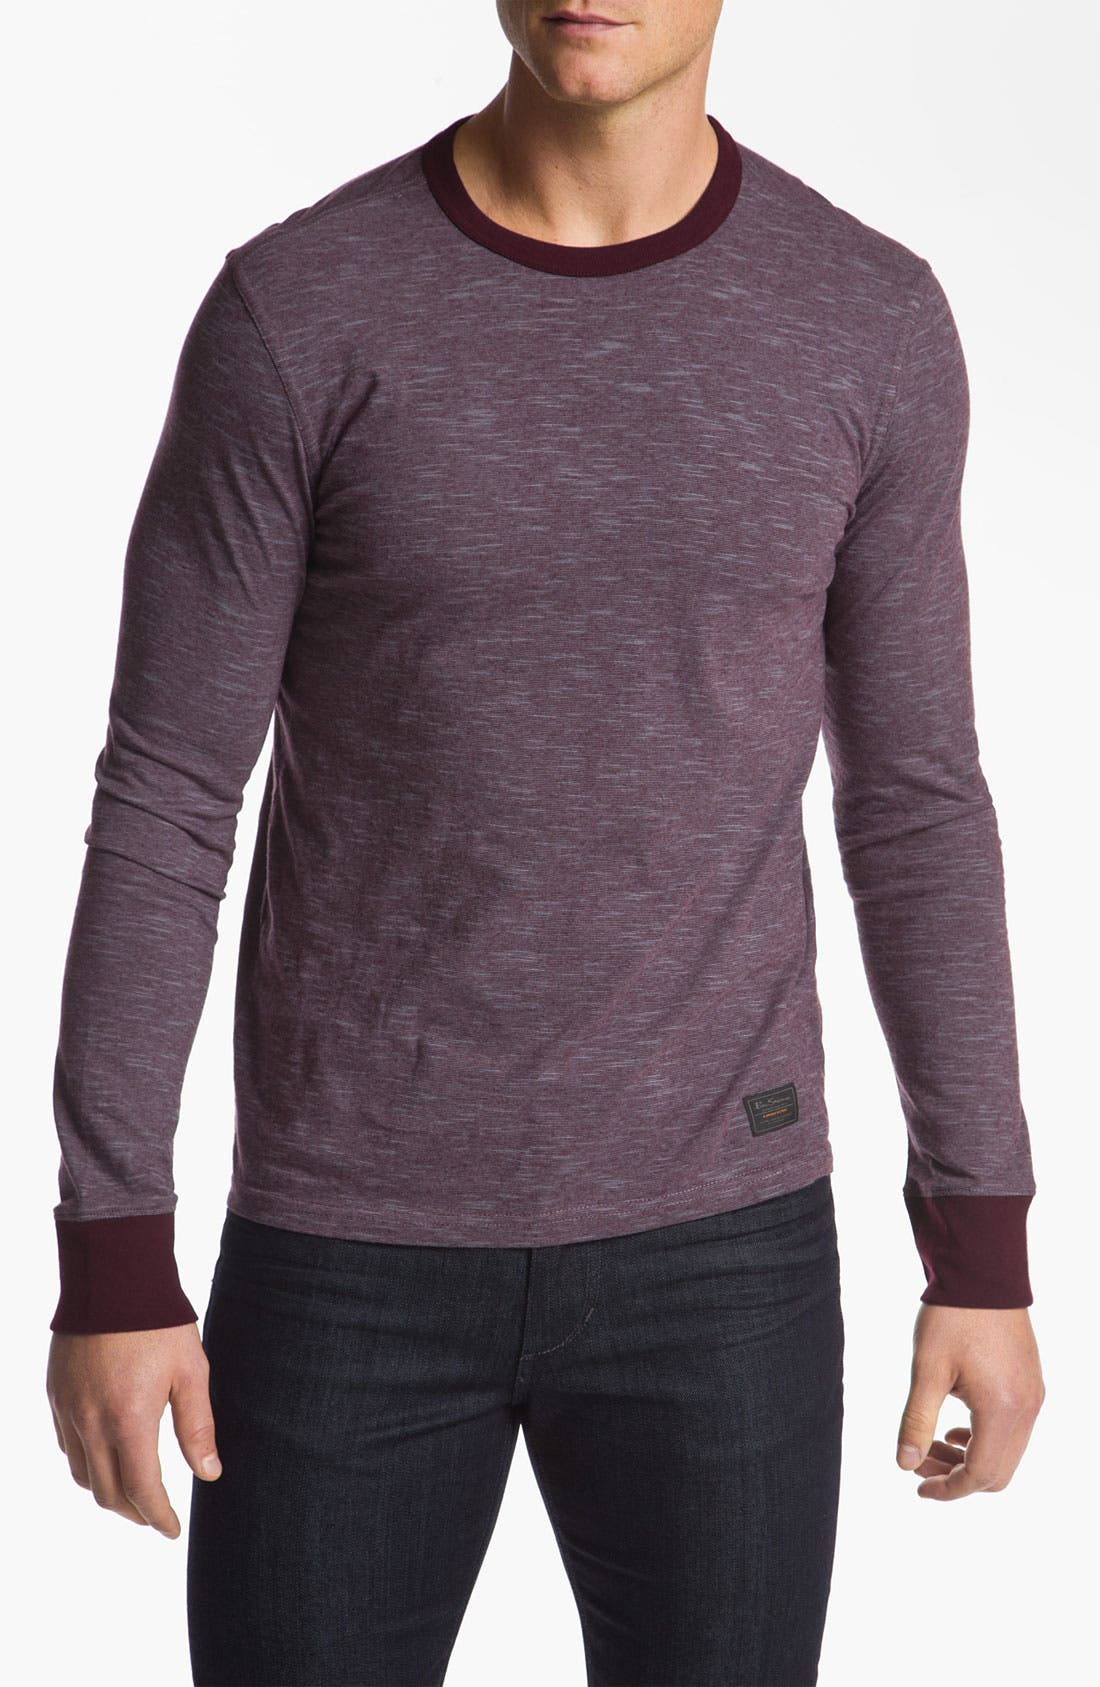 Main Image - Ben Sherman Crewneck Shirt